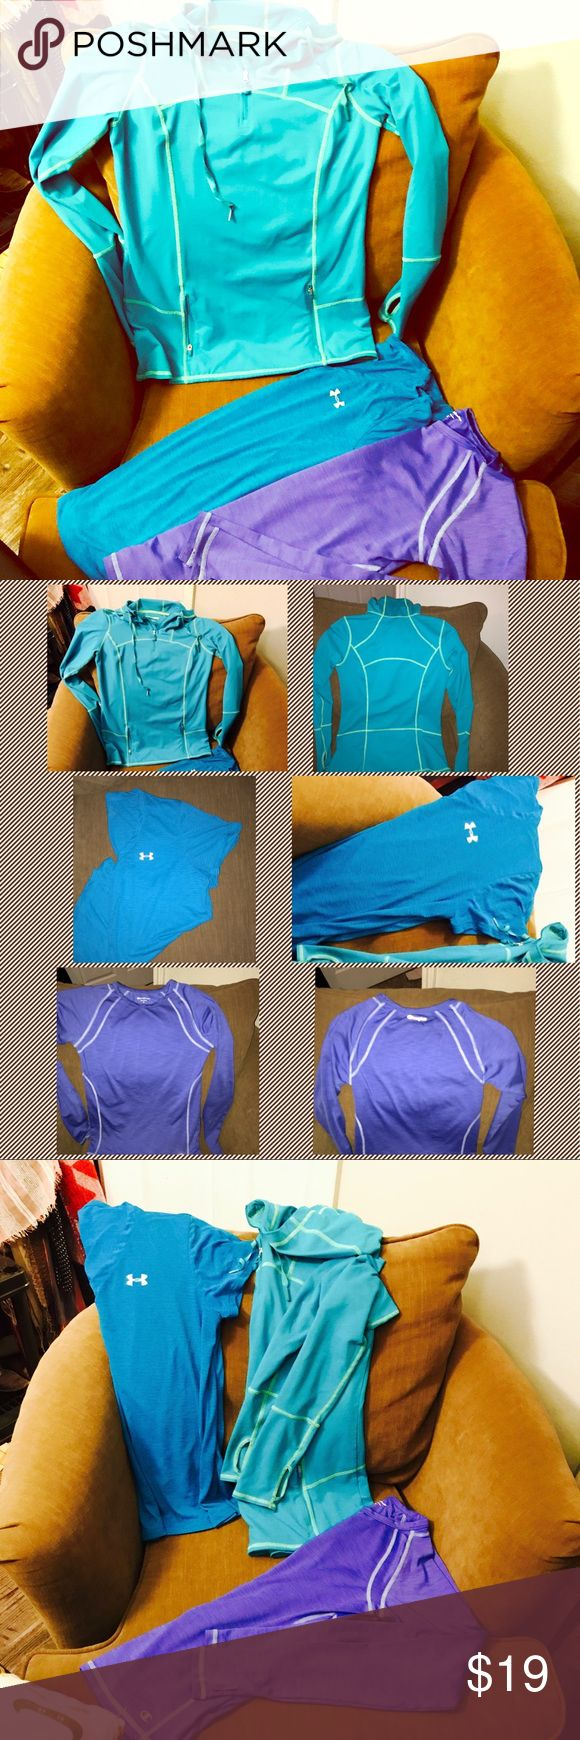 Set of 3 Exercise Workout Tops Women's S & M 👟🔆 Set of 3 exercise/workout tops including one short sleeve UnderArmour (size small-medium), one long sleeve hooded pull-over from Costco/Kirkland brand (size small), and one long sleeve Champion brand top. All in great, lightly used condition.  *Note -Kirkland hooded pullover has a flaw on back shoulder where thread has started to come loose. This is difficult to notice. See picture of it below.  Welcome to use Offer Button as well as Bundle…